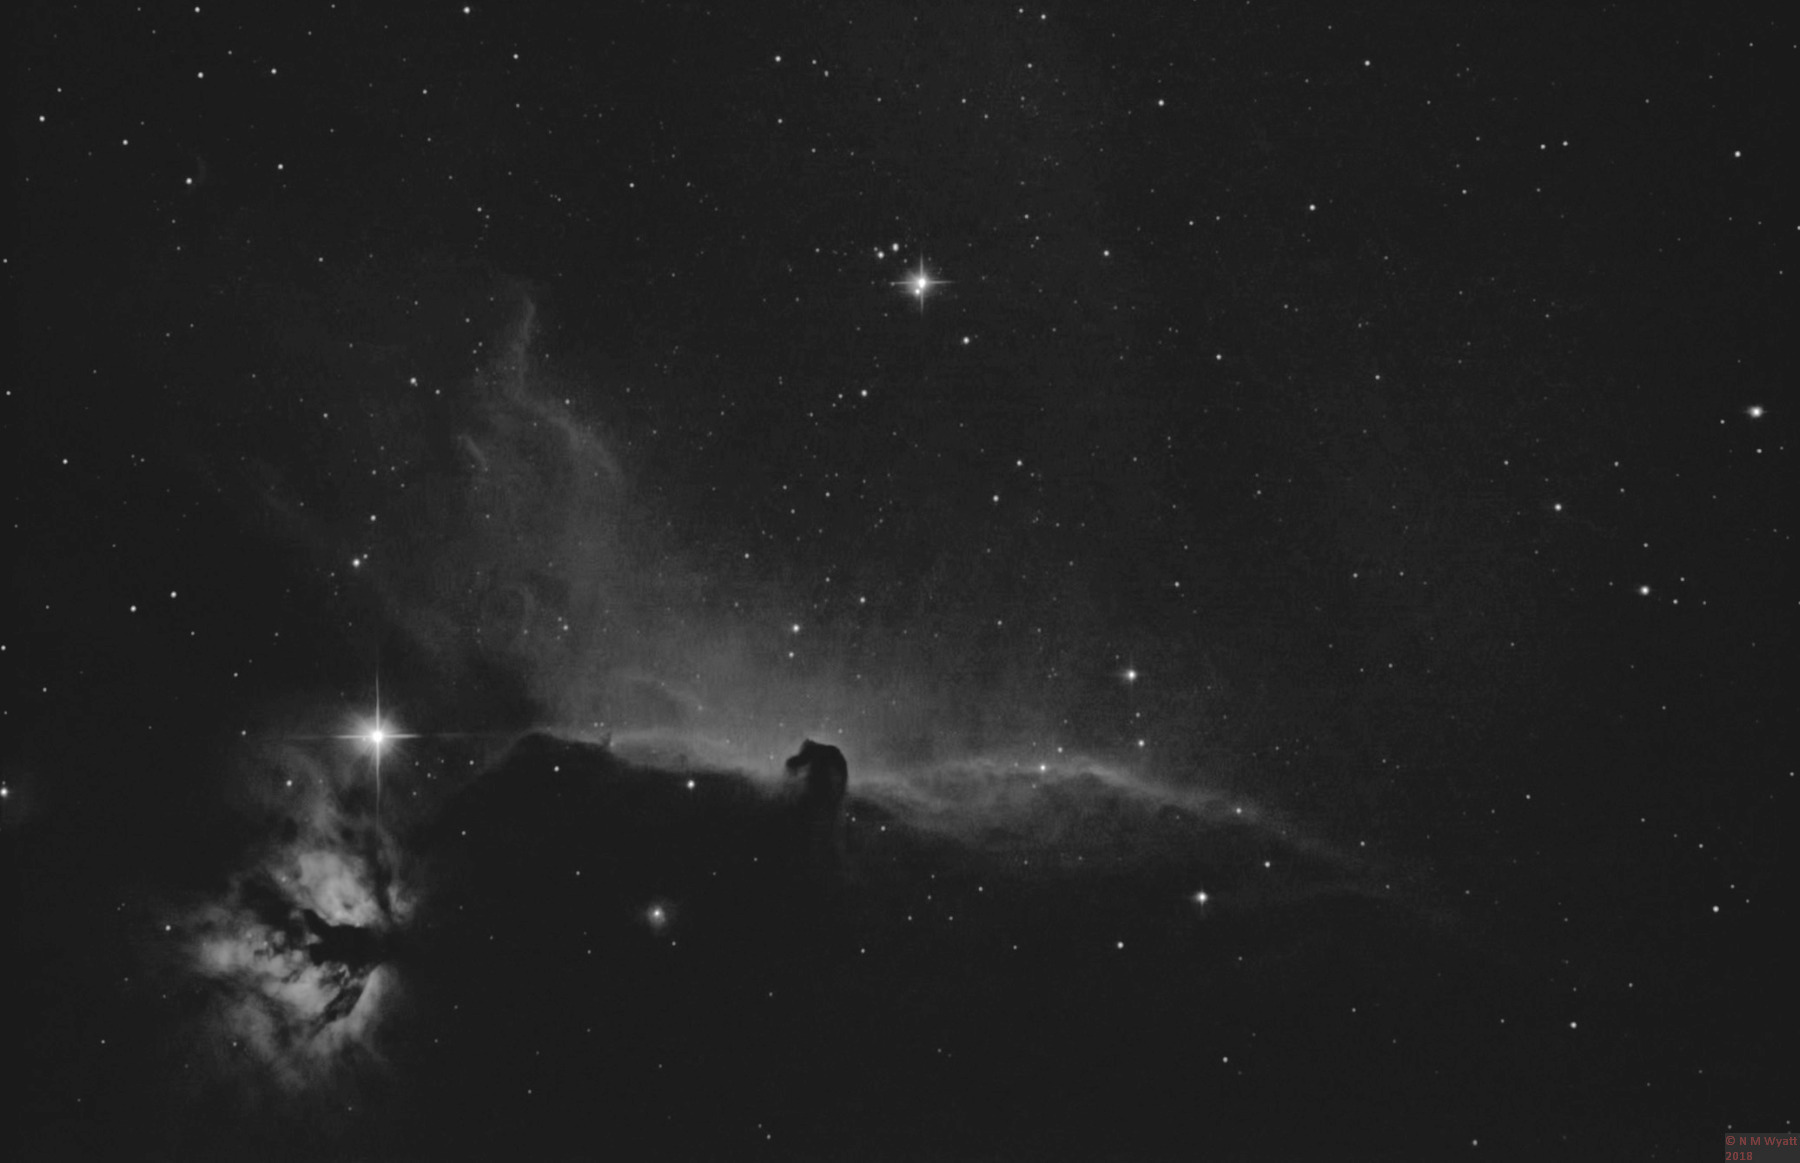 Horsehead and Flame nebulas in Hydrogen Alpha (Ha) light